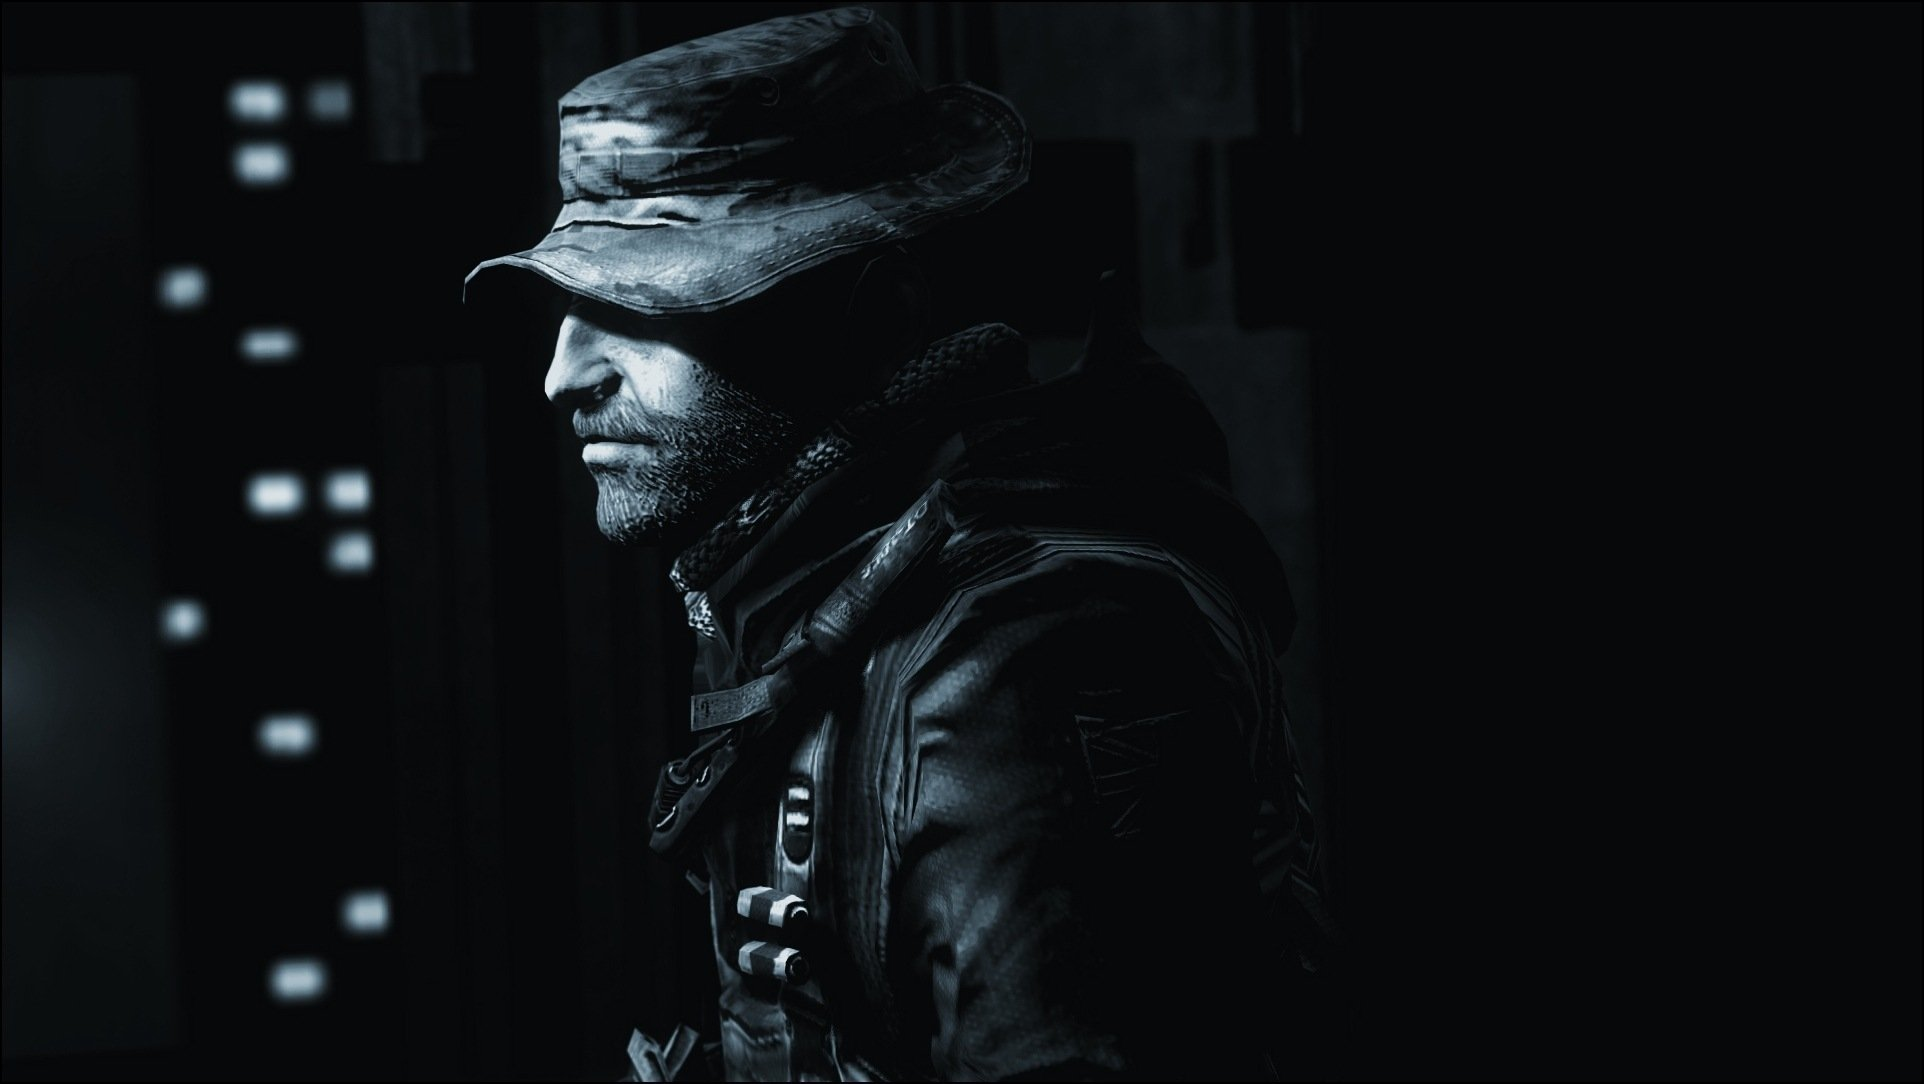 Call Of Duty Captain Price HD Wallpaper GamePhD 1924x1084